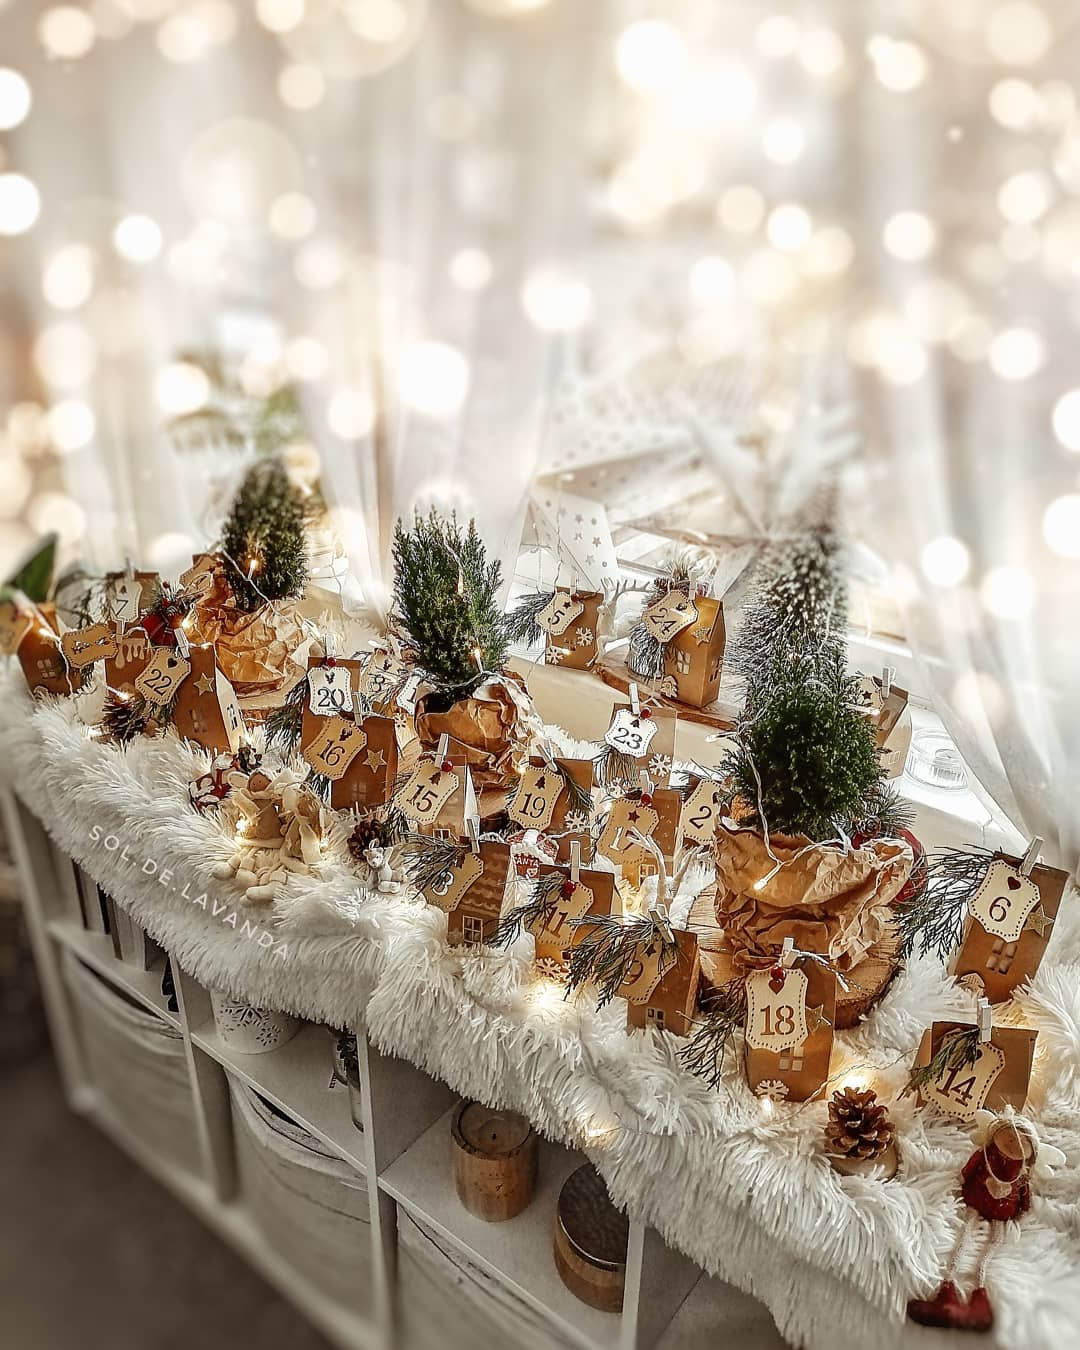 Magical Scandinavian Christmas vignette with advent calendar and fairy lights - @sol.de.lavanda